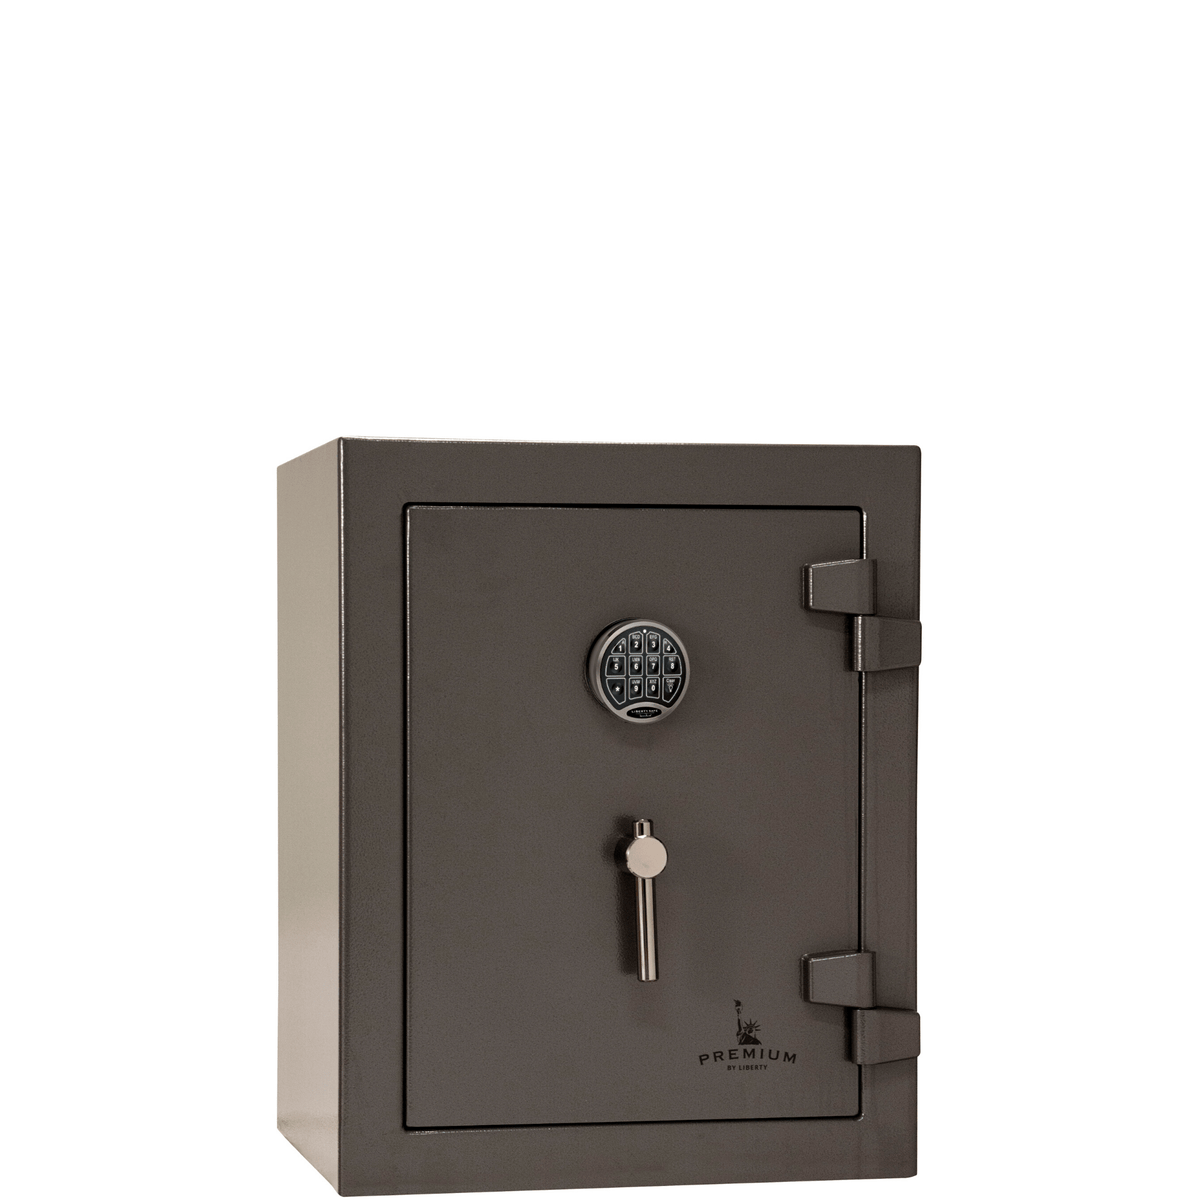 "Premium Home Series | 90 Minute Fire Protection | 12 | Dimensions: 42""(H) x 24""(W) x 22.5""(D) 